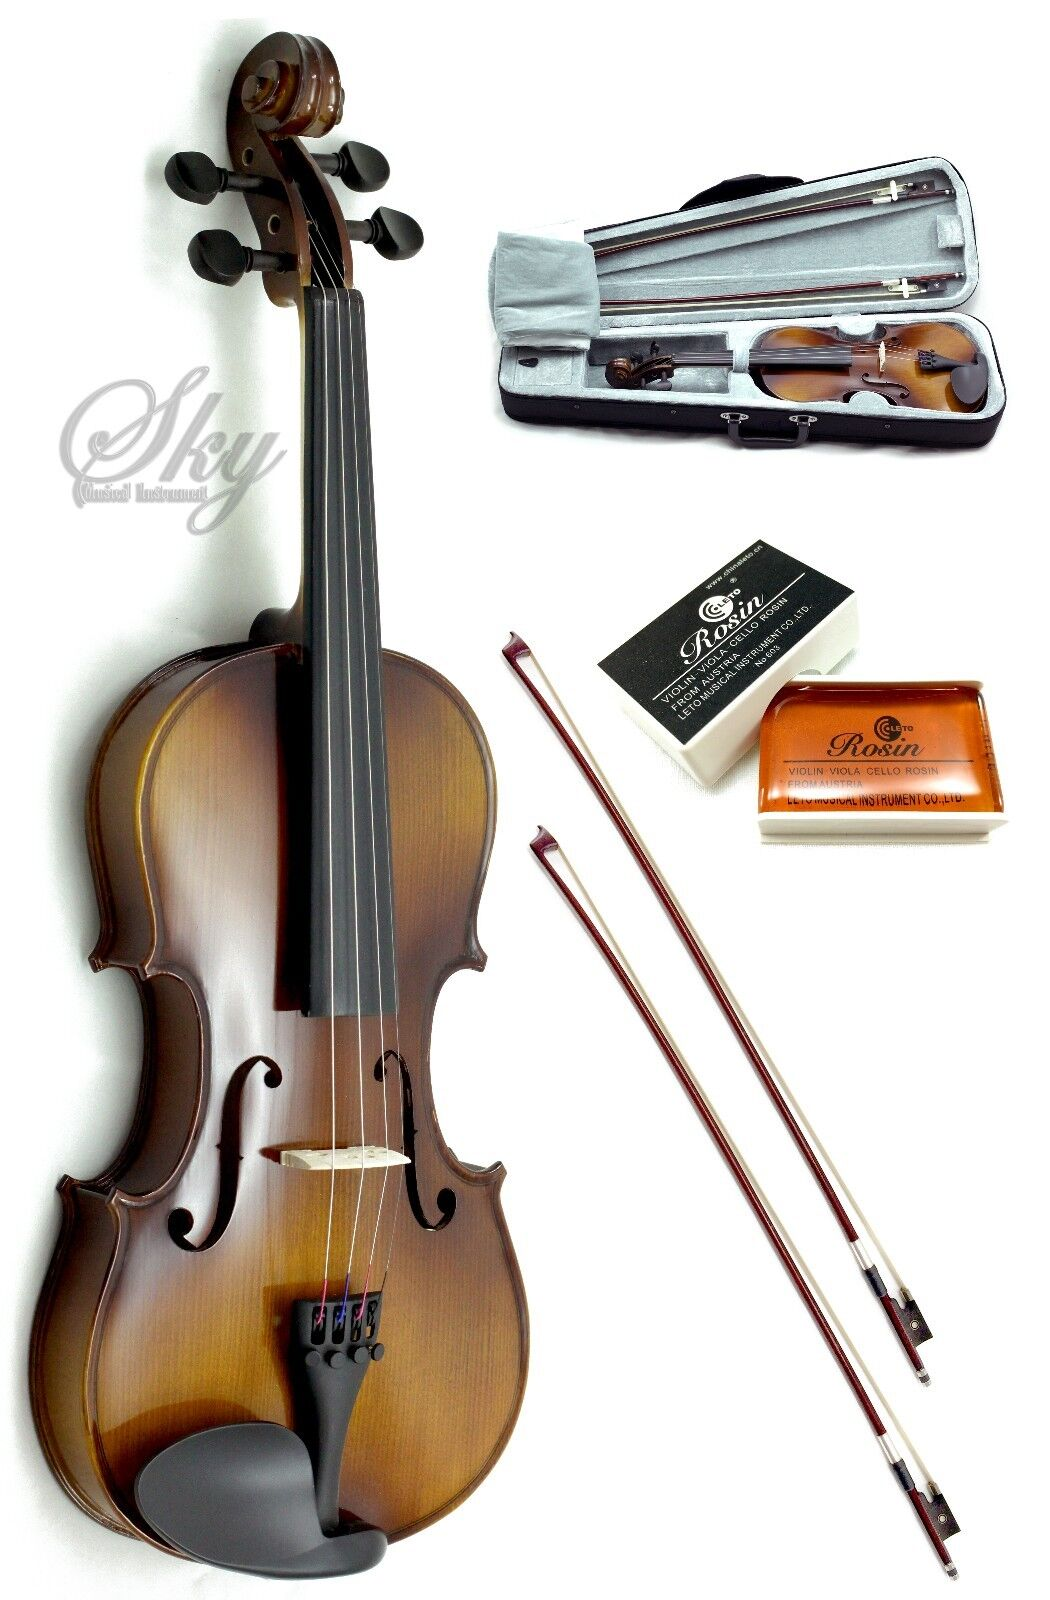 Solid Wood Violin 3 4 storlek Hi-Quality w Leto Rosin, Light Case+Two Brazil Bows